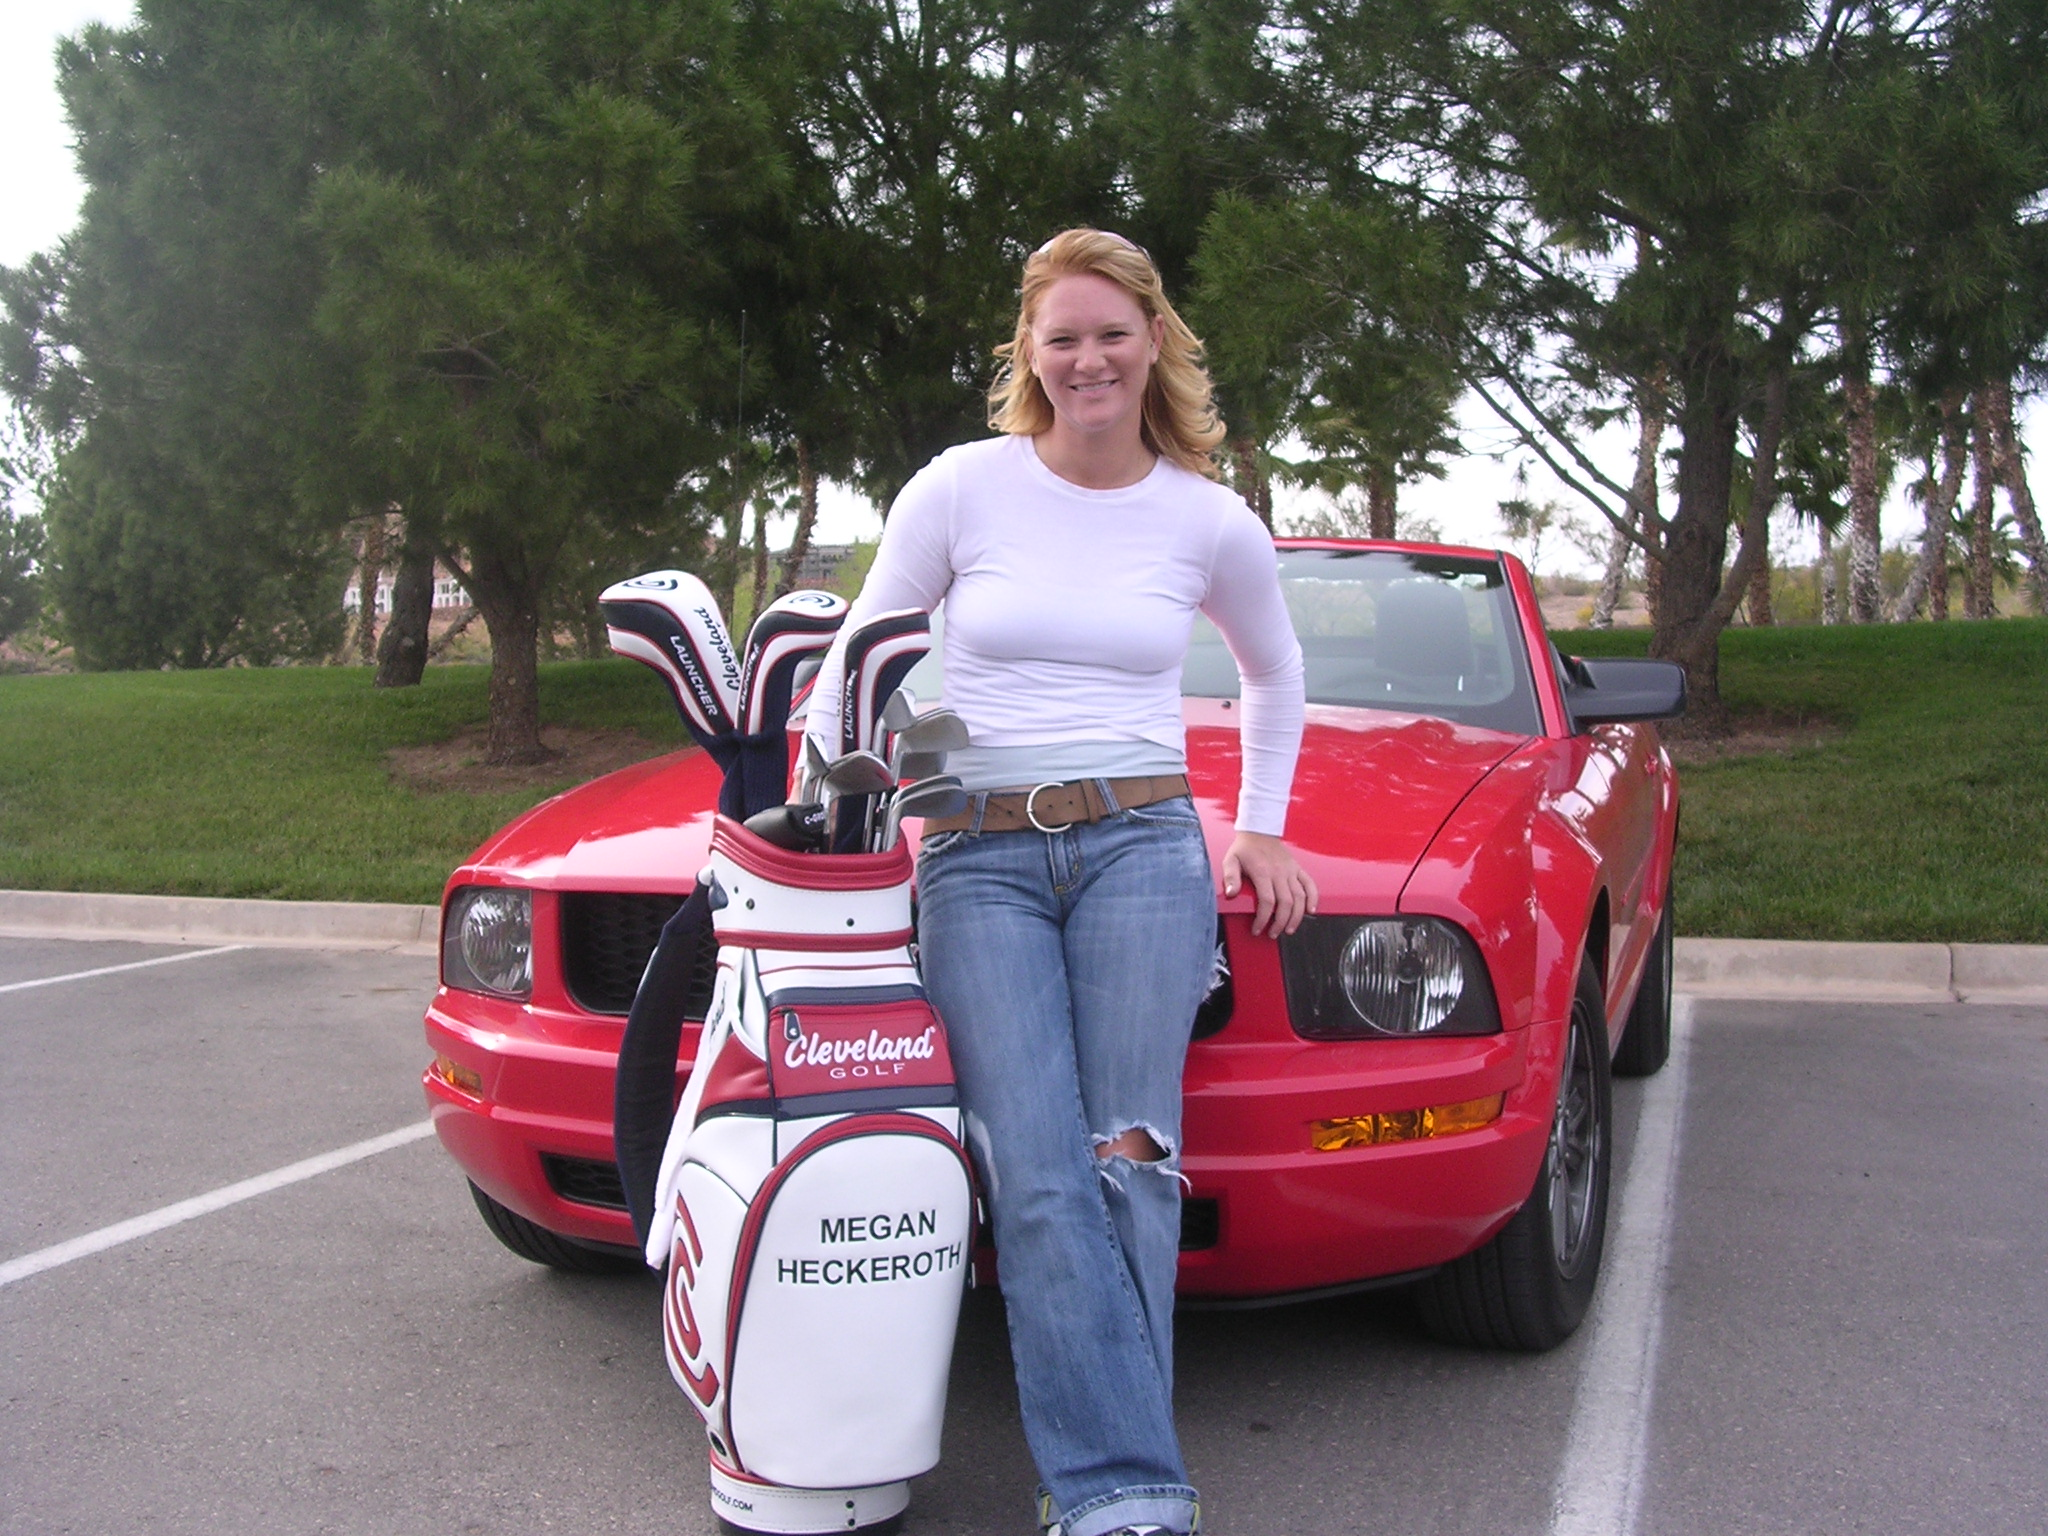 Megan Heckeroth with her Ford Mustang